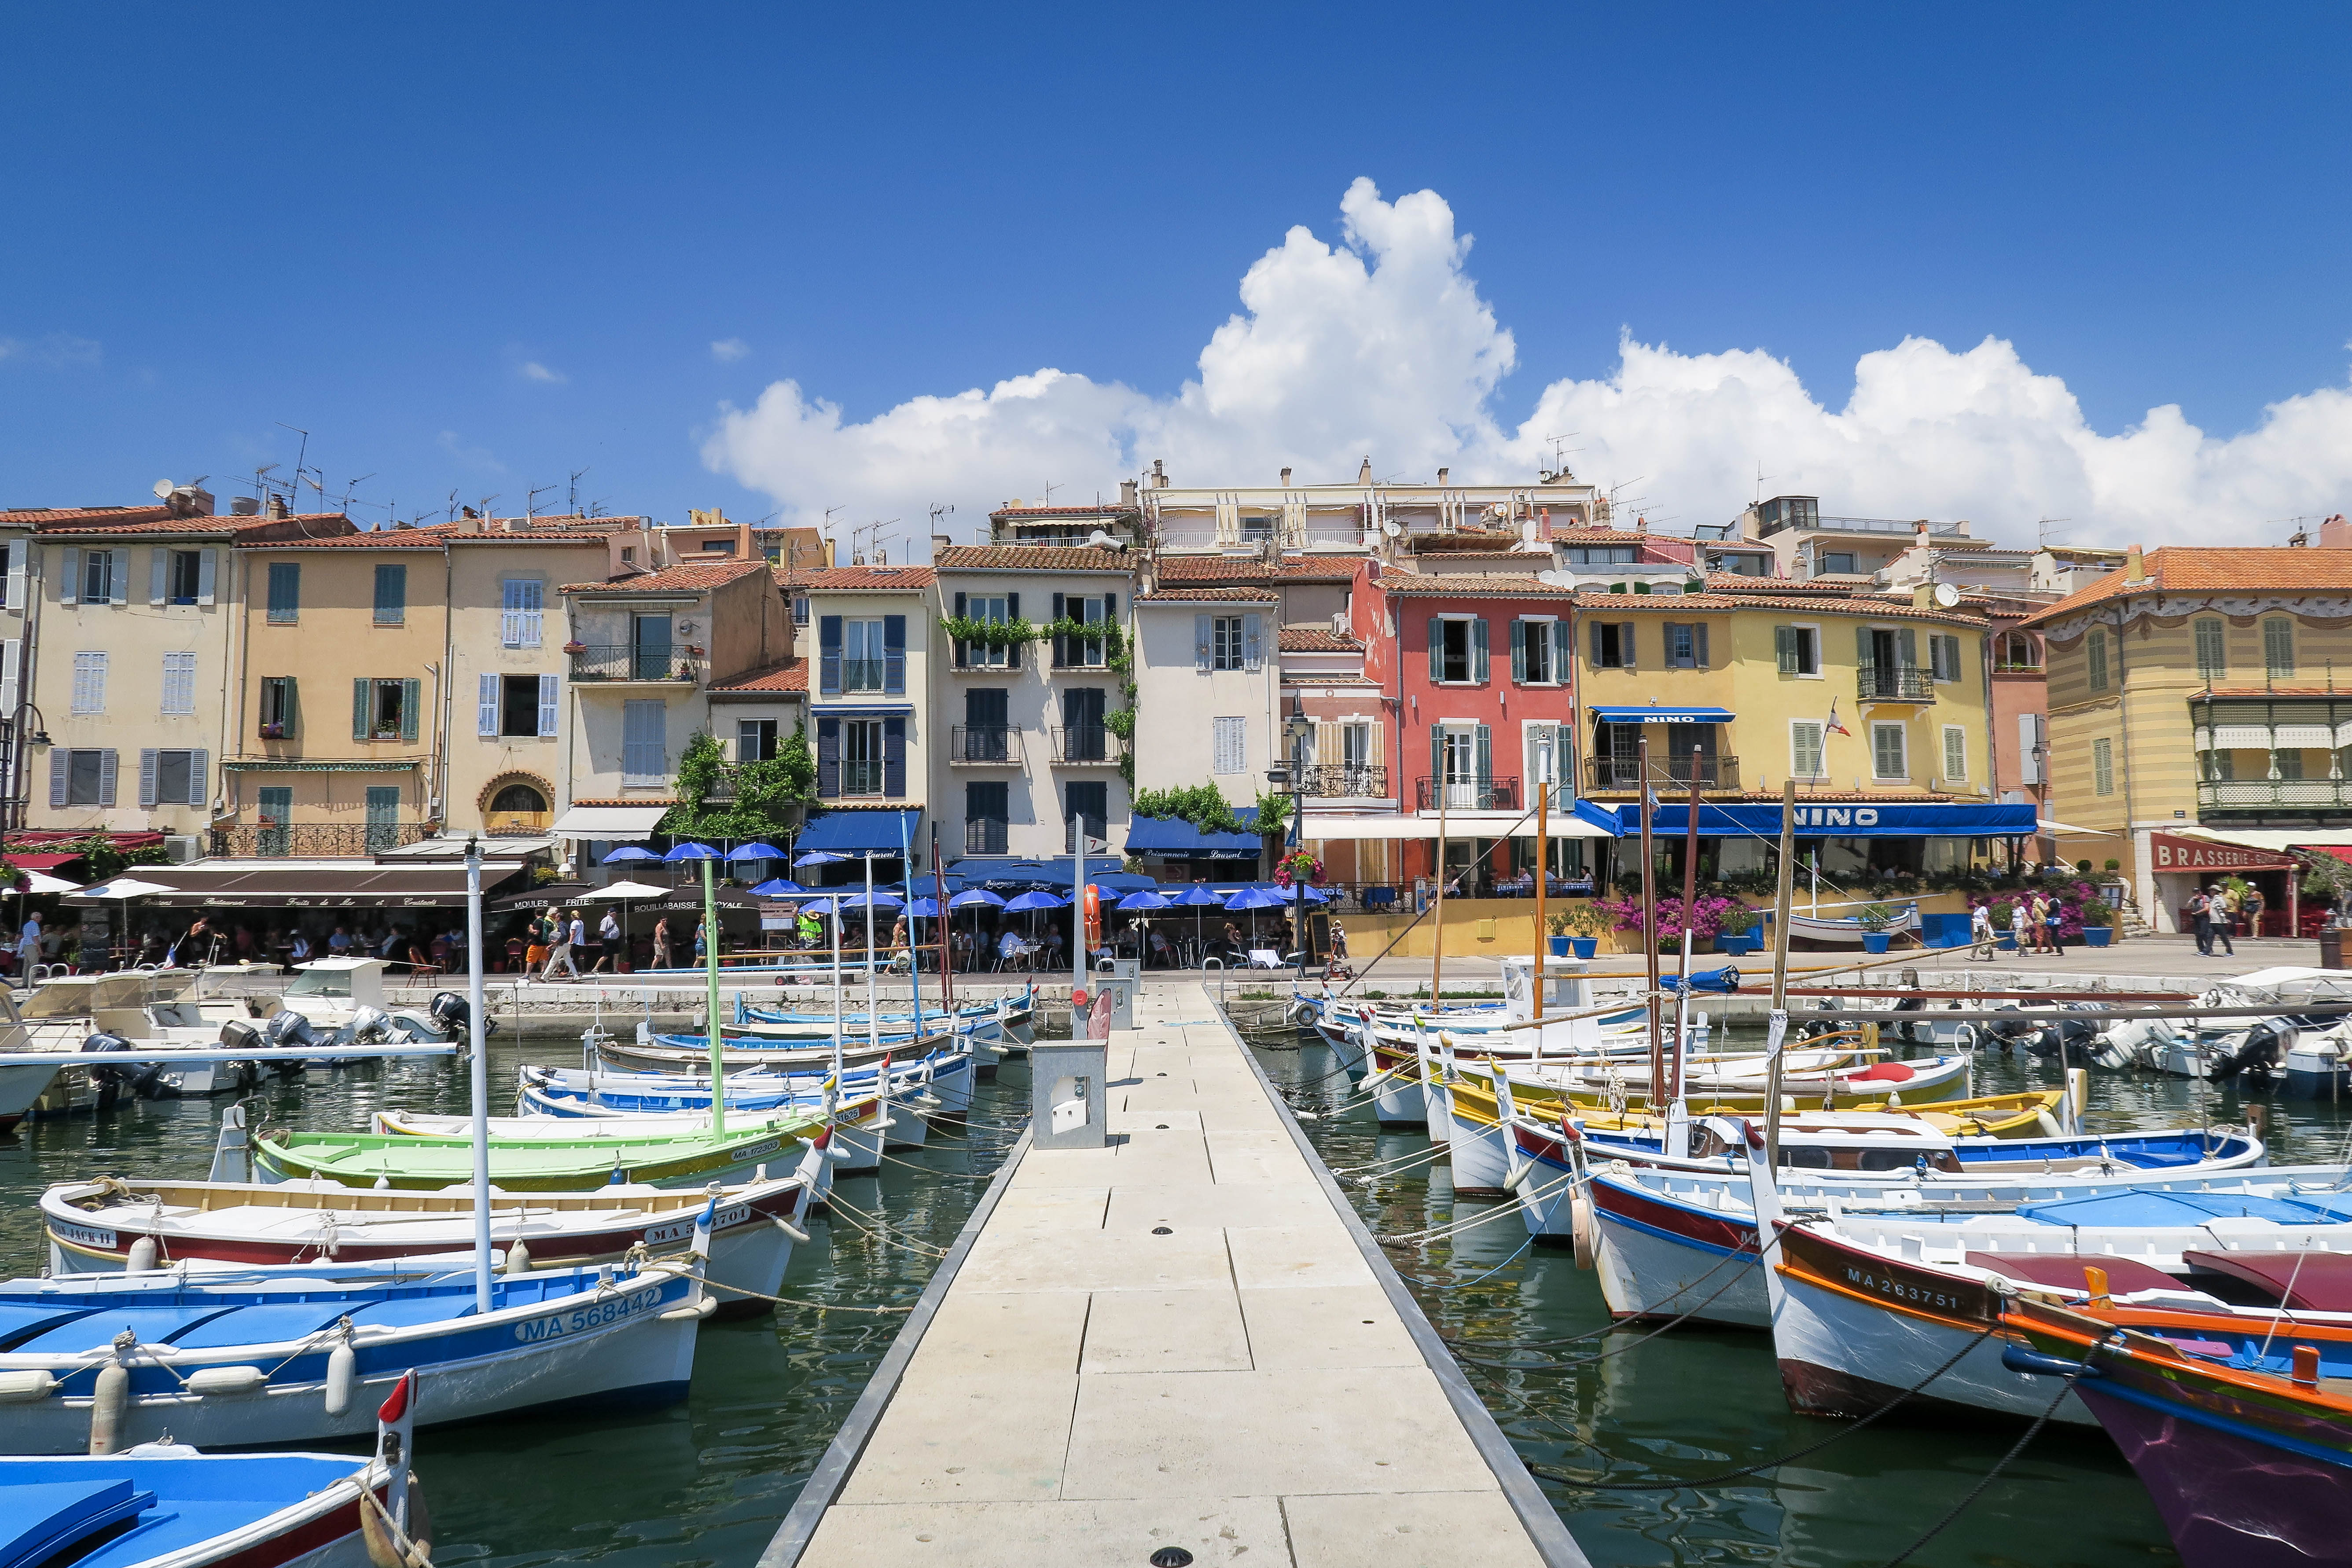 5 reasons to Visit Cassis, South of France. Travel Diary by Rosie Andre (beach, village, town, bucketlist, destination, photography, Europe, journal, countryside, landscape, boats, harbour, harbor, port)